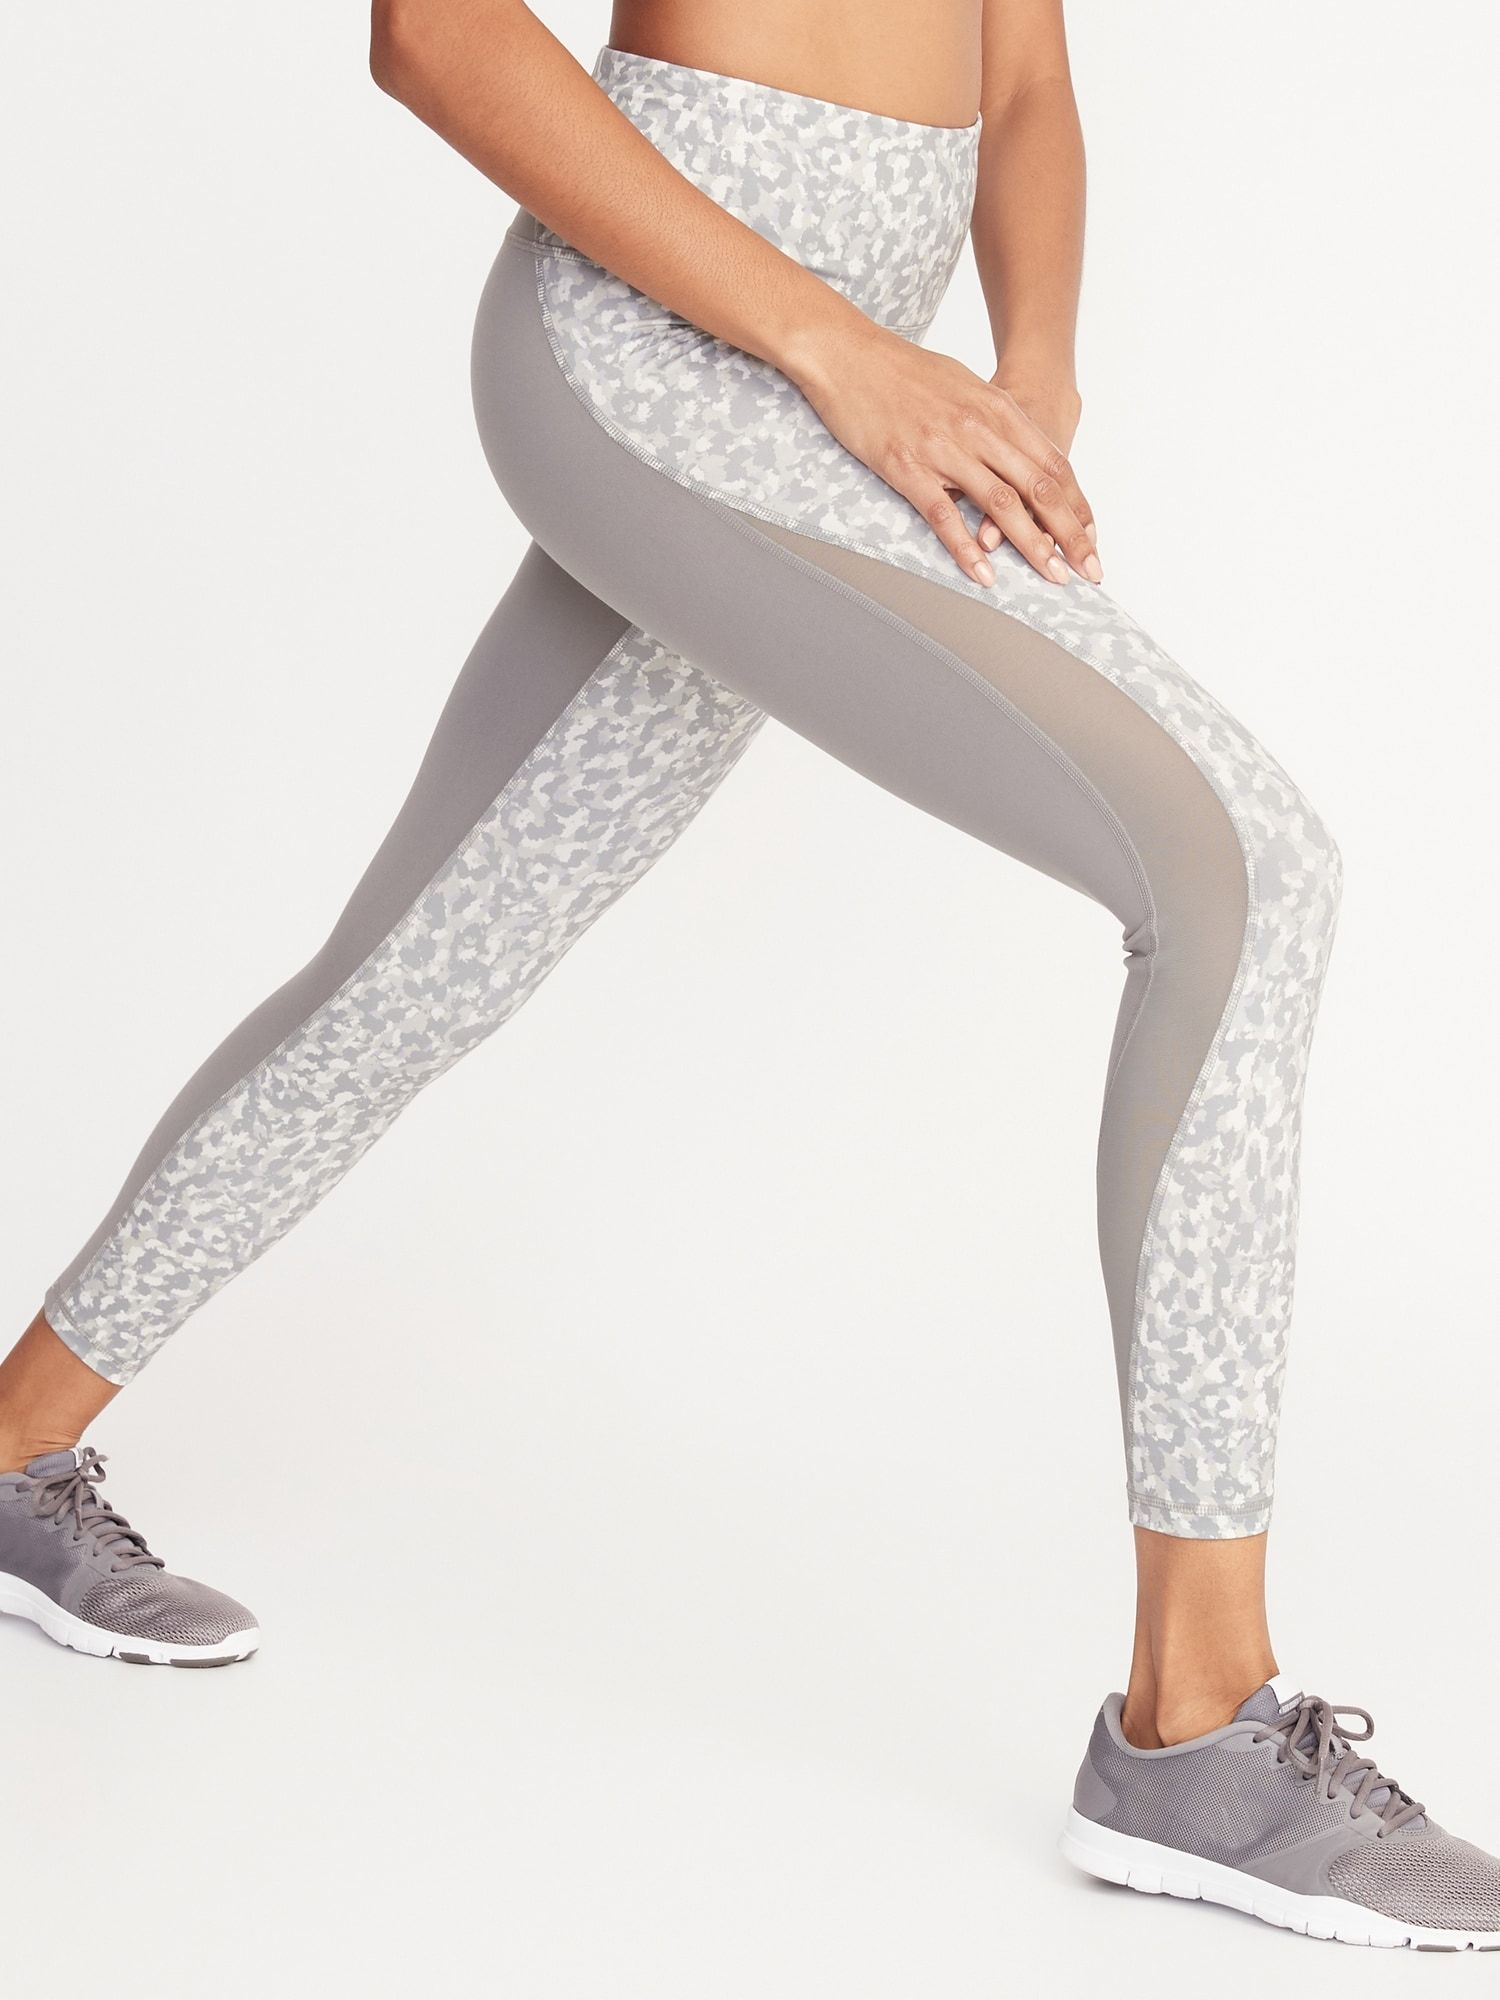 c94319f01593d High-Rise Elevate 7/8-Length Mesh-Trim Compression Leggings for Women | Old  Navy